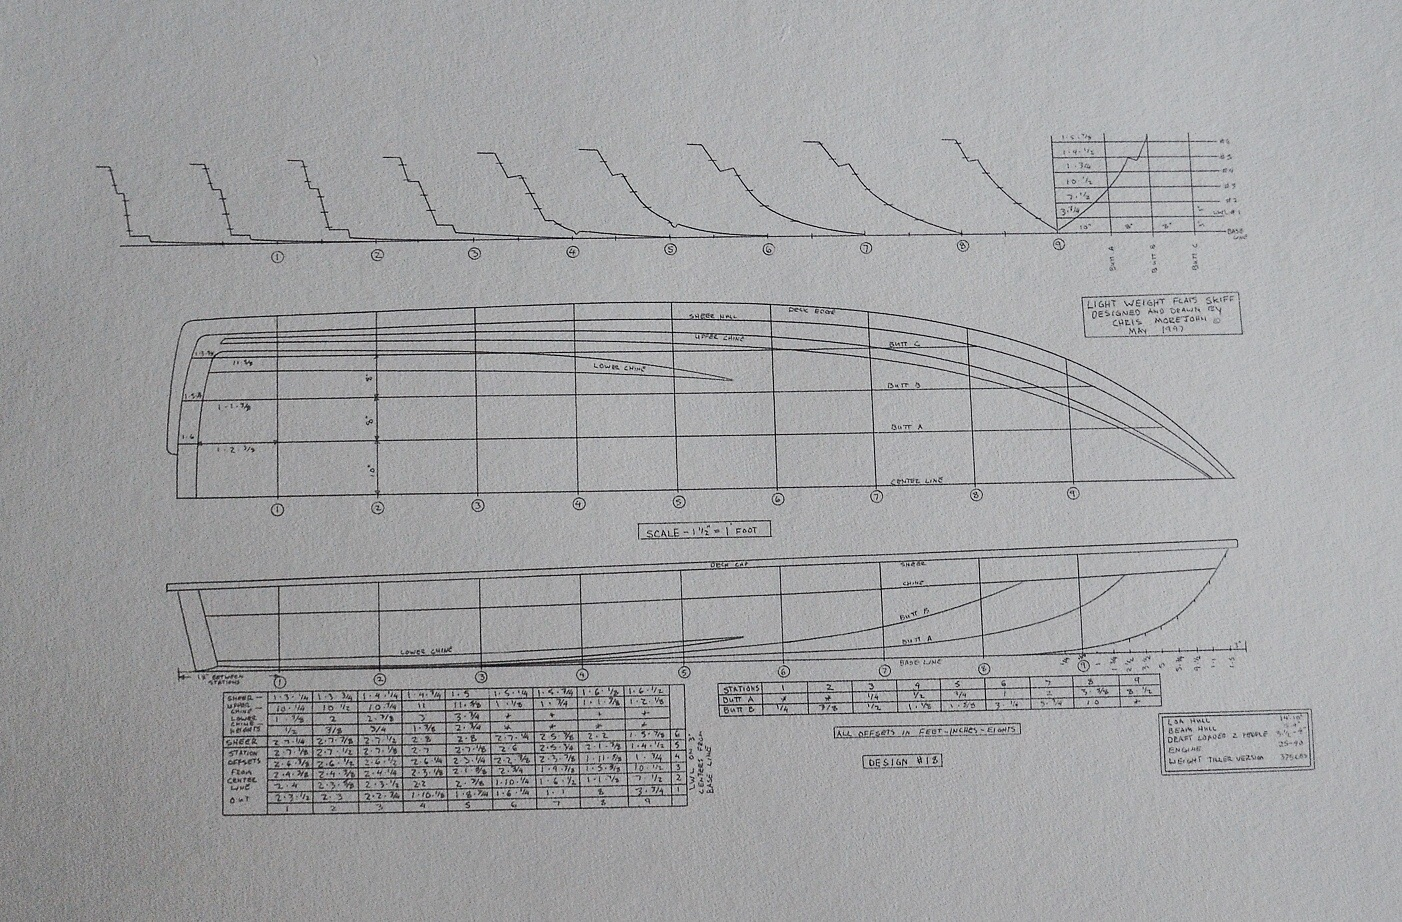 Flats skiff hull lines and 3-D drawings by Chris Morejohn ...